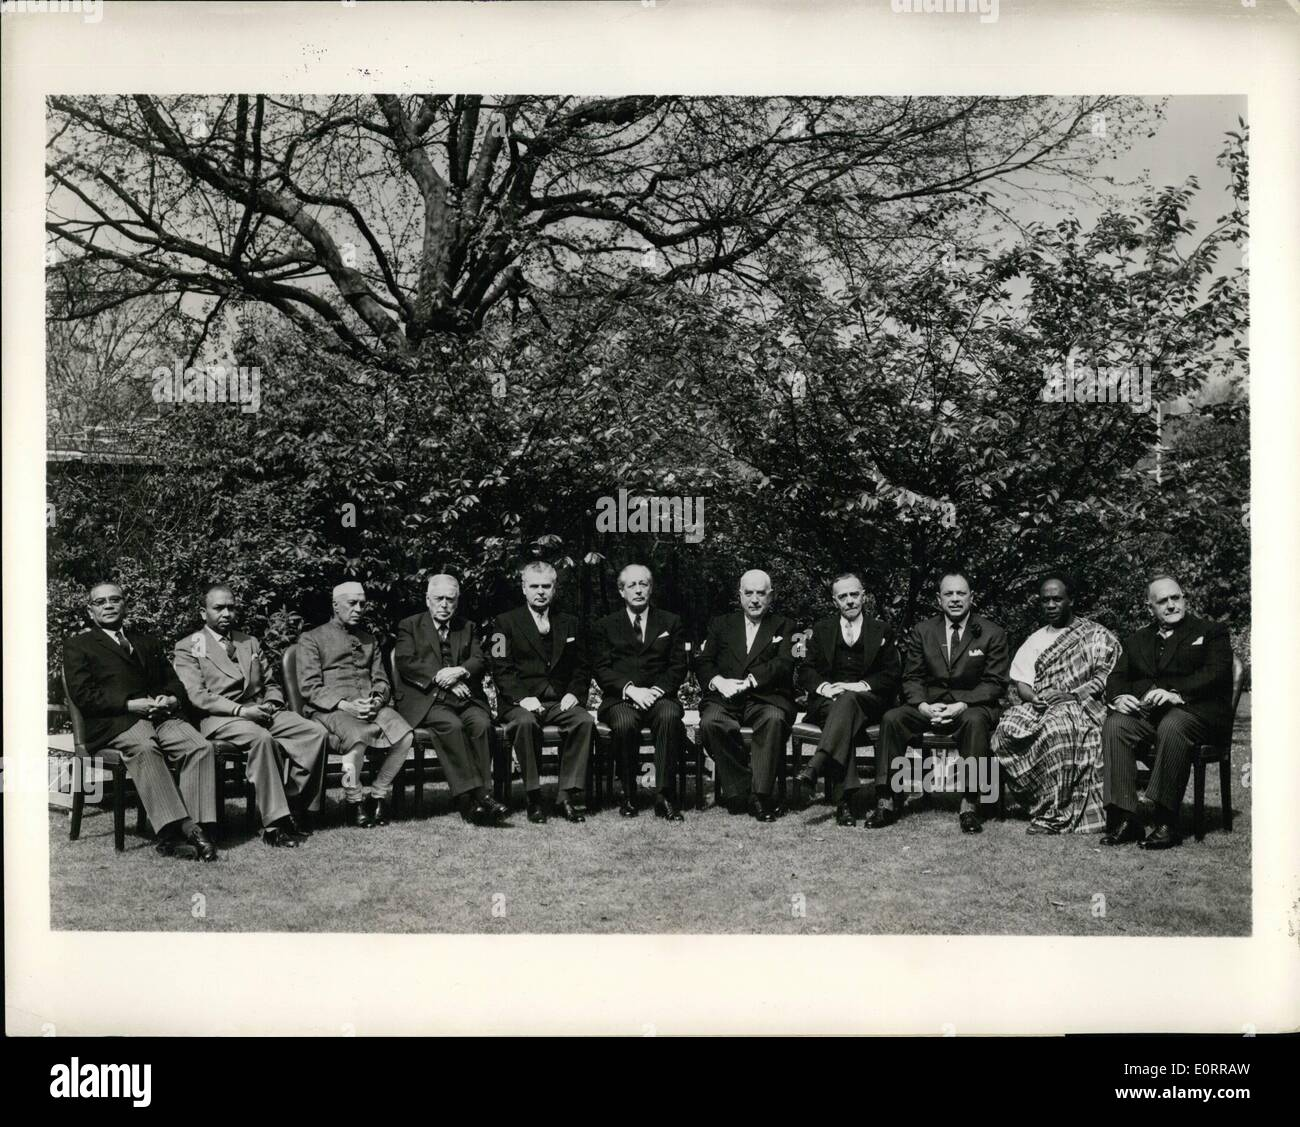 May 05, 1960 - Leaders of eleven nations: In the springtime garden of No. 10 Downing street, London, official residence of Britain's Prime Minister, leaders of eleven nations attending the ninth Commonwealth Prime Ministers' Conference pose for an official photograph. Left to right: Tunku Abdul Rahman, Prime Minister of the Federation of Malaya; Mr. Edmund Cooray, Minister of Justice for Ceylon; Shri Jawaharlal Nehru, Prime Minister of India; Mr. Walter Nash, Prime Minister of Canada; Mr - Stock Image